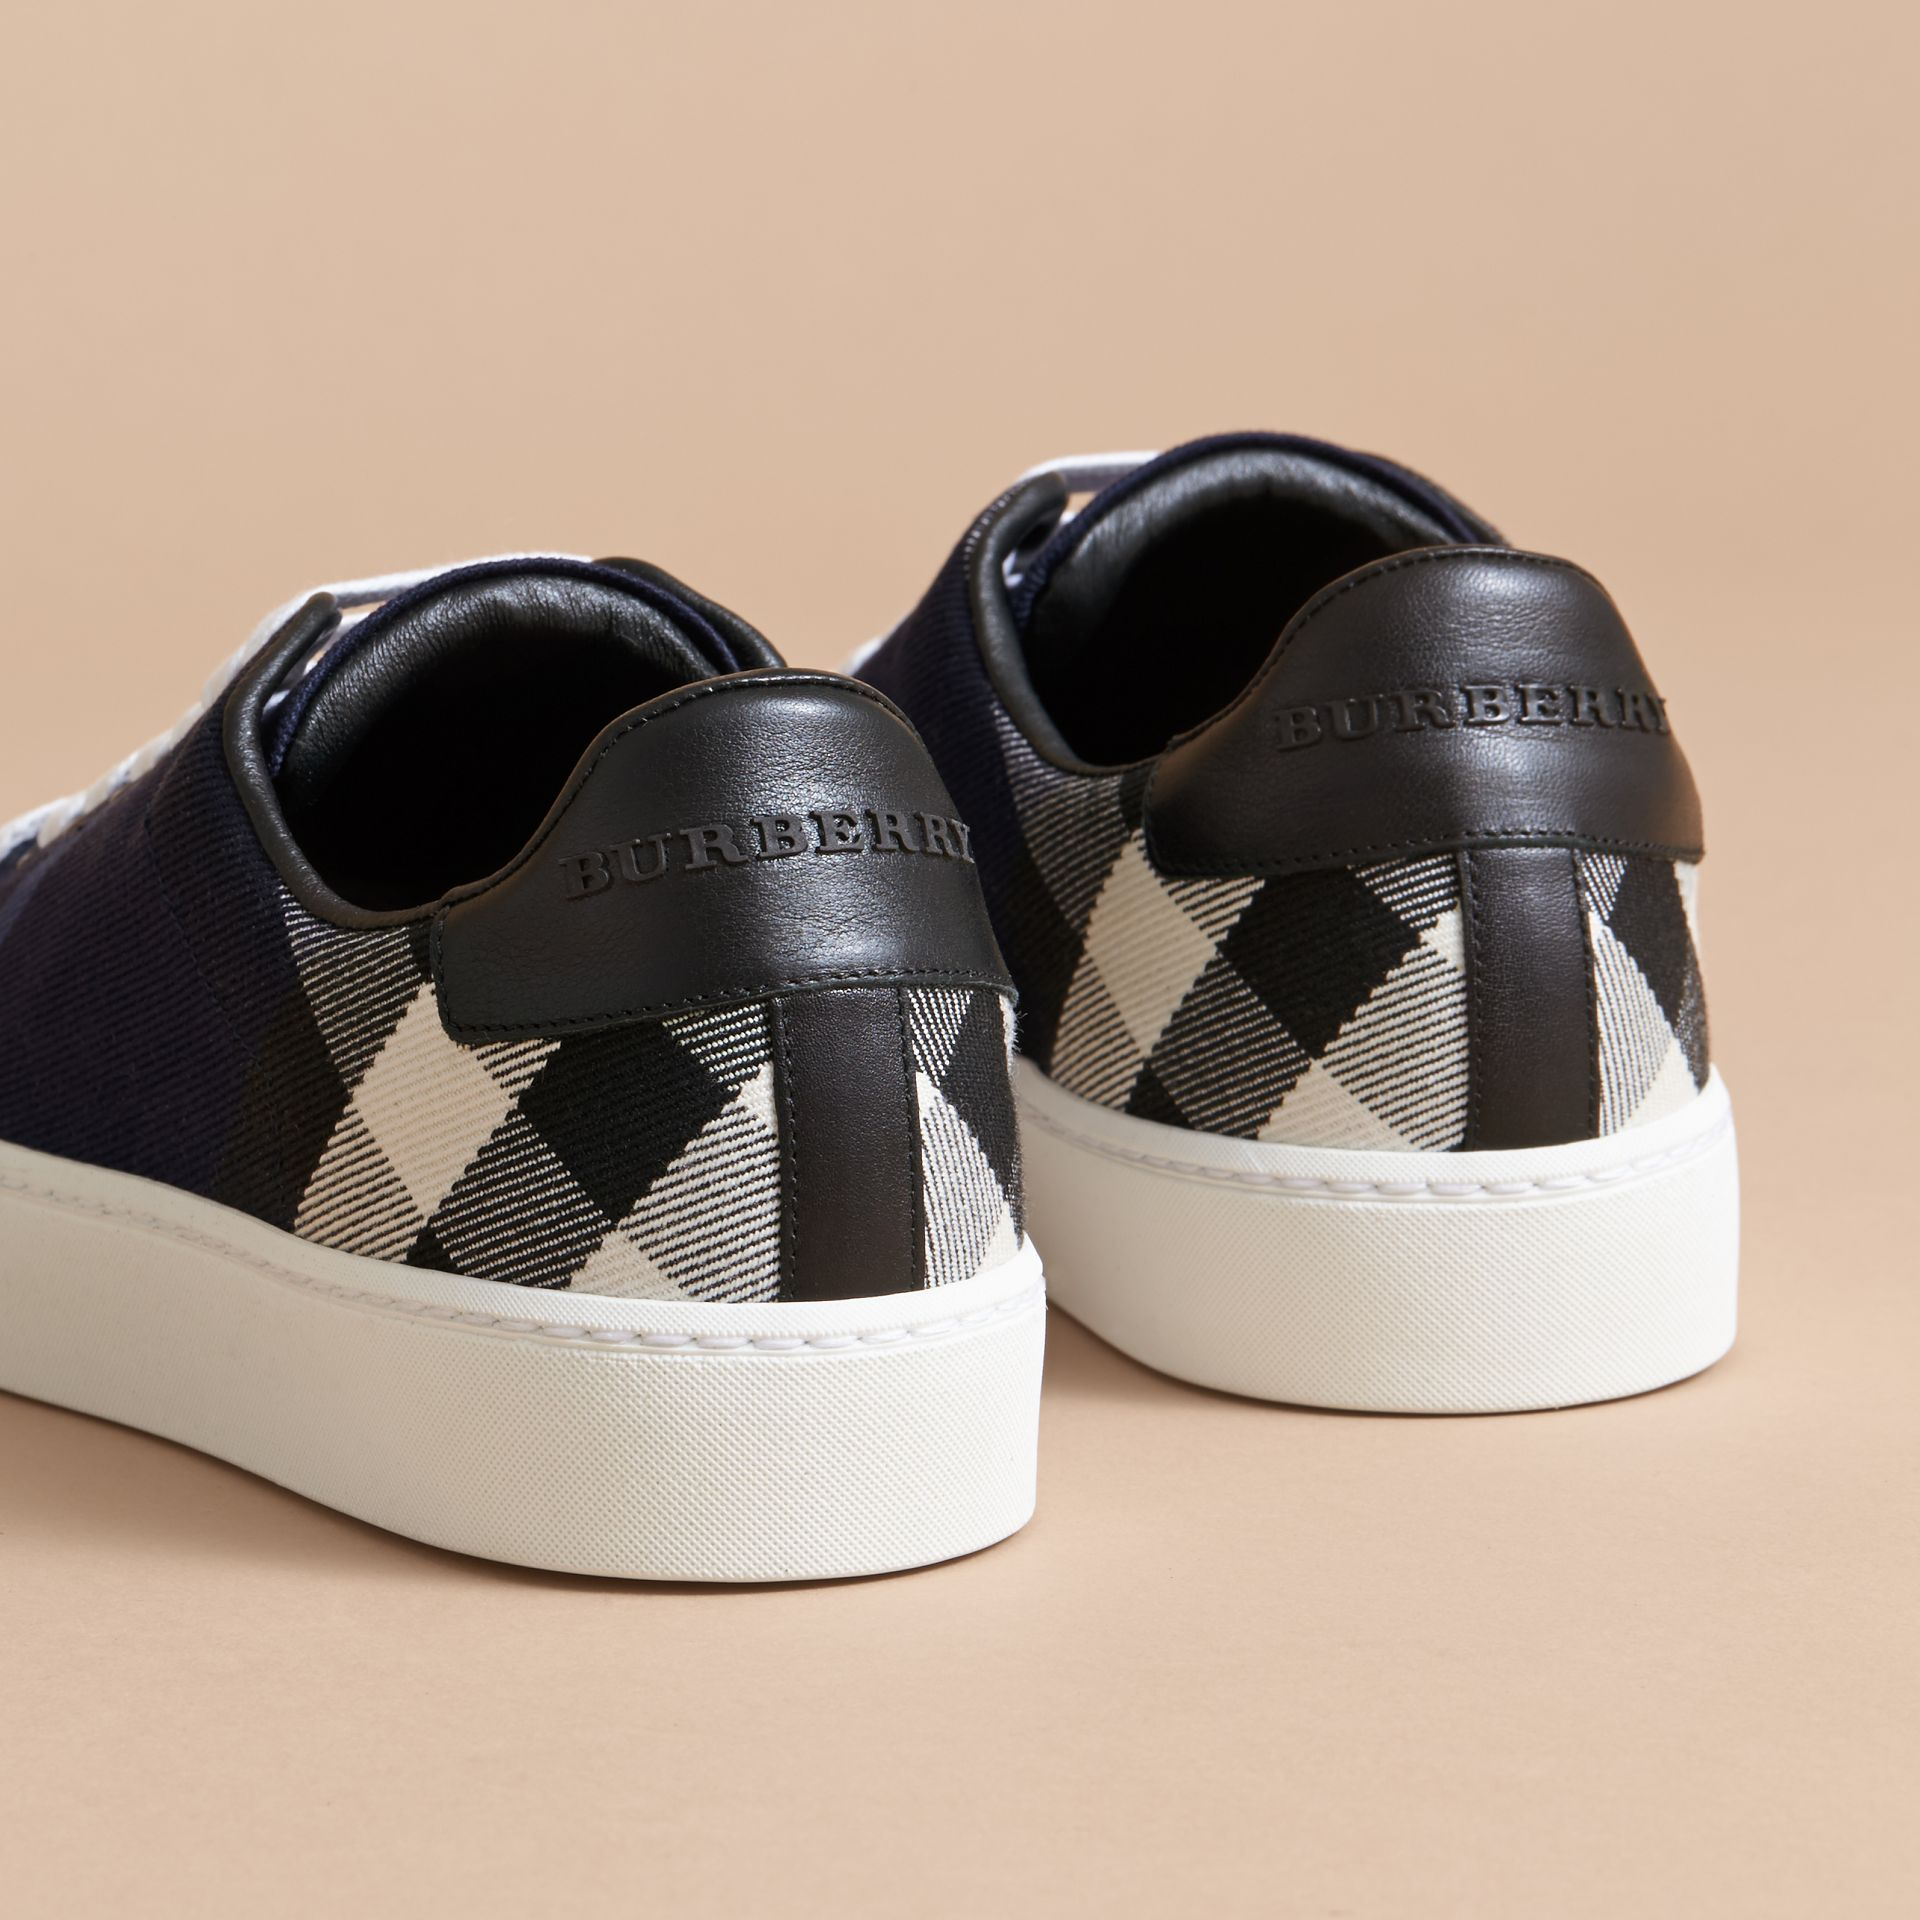 Overdyed House Check and Leather Trainers in Indigo Blue - Women | Burberry Australia - gallery image 4